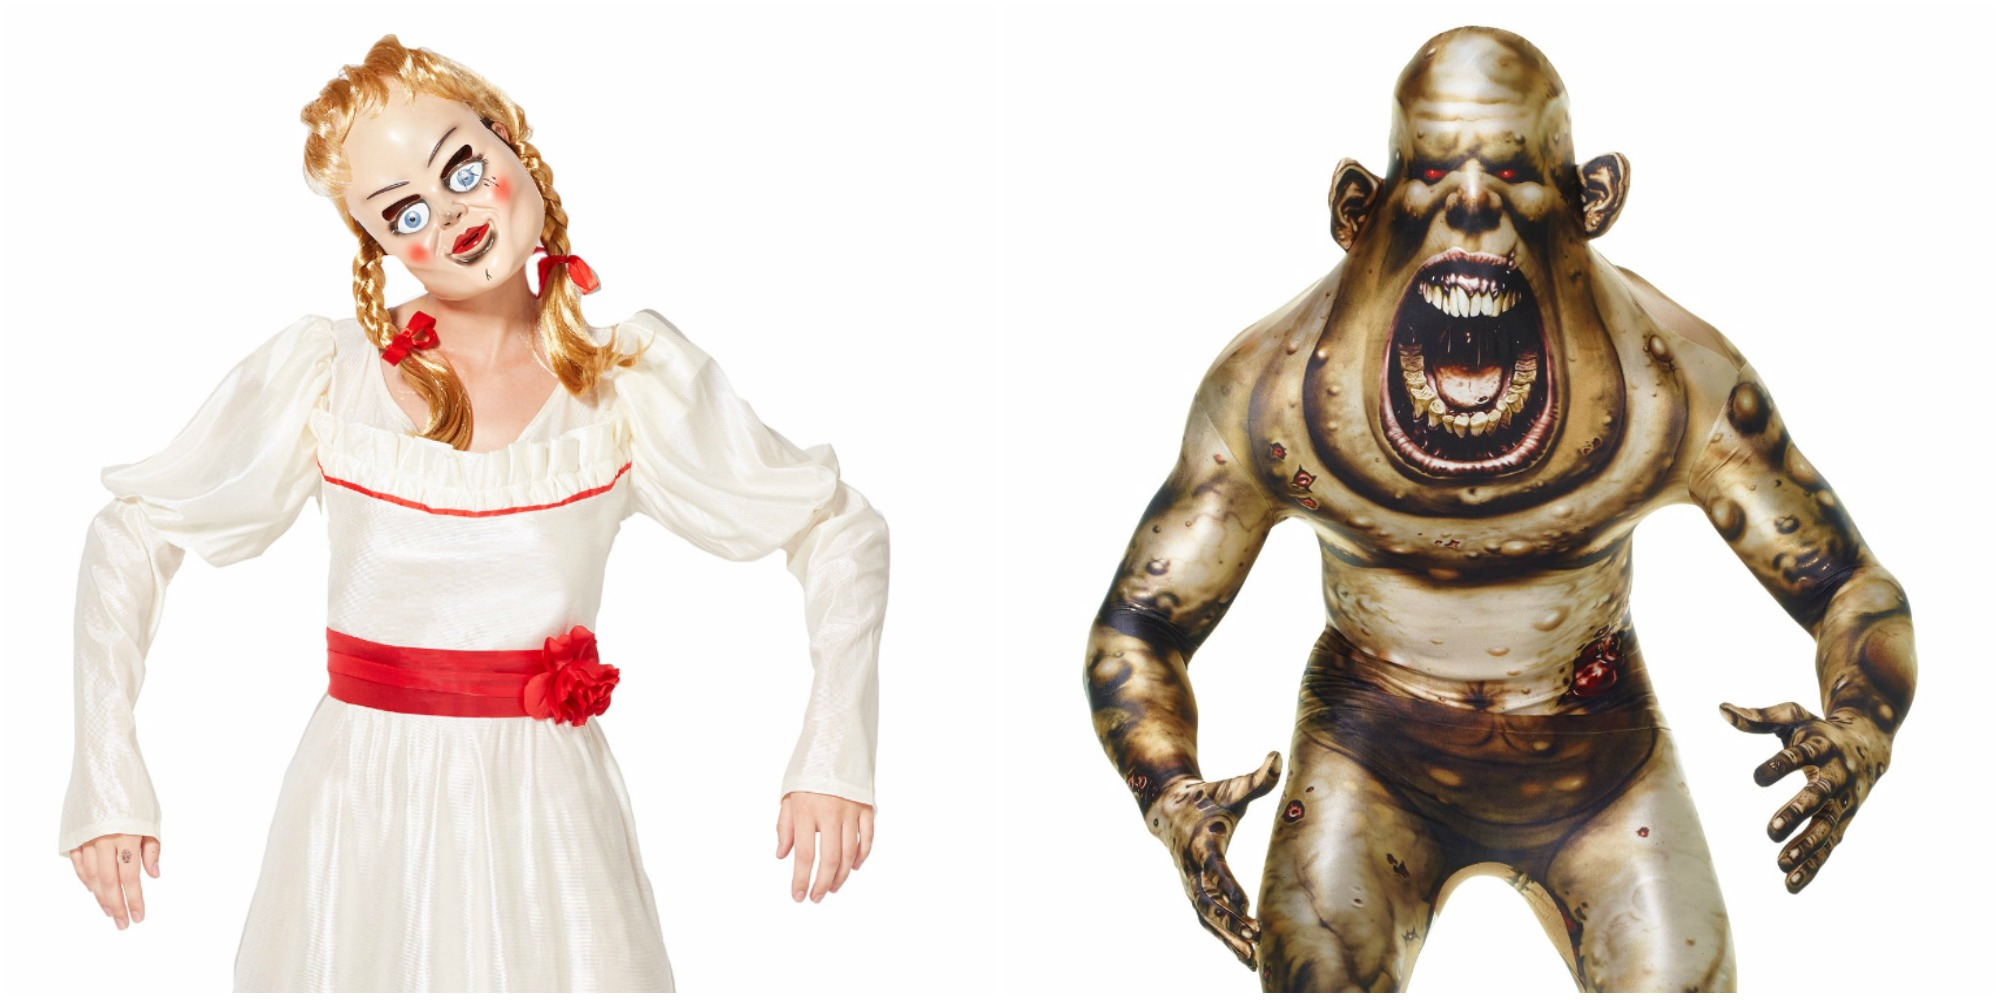 20 Scary Halloween Costume Ideas That Will Seriously Spook